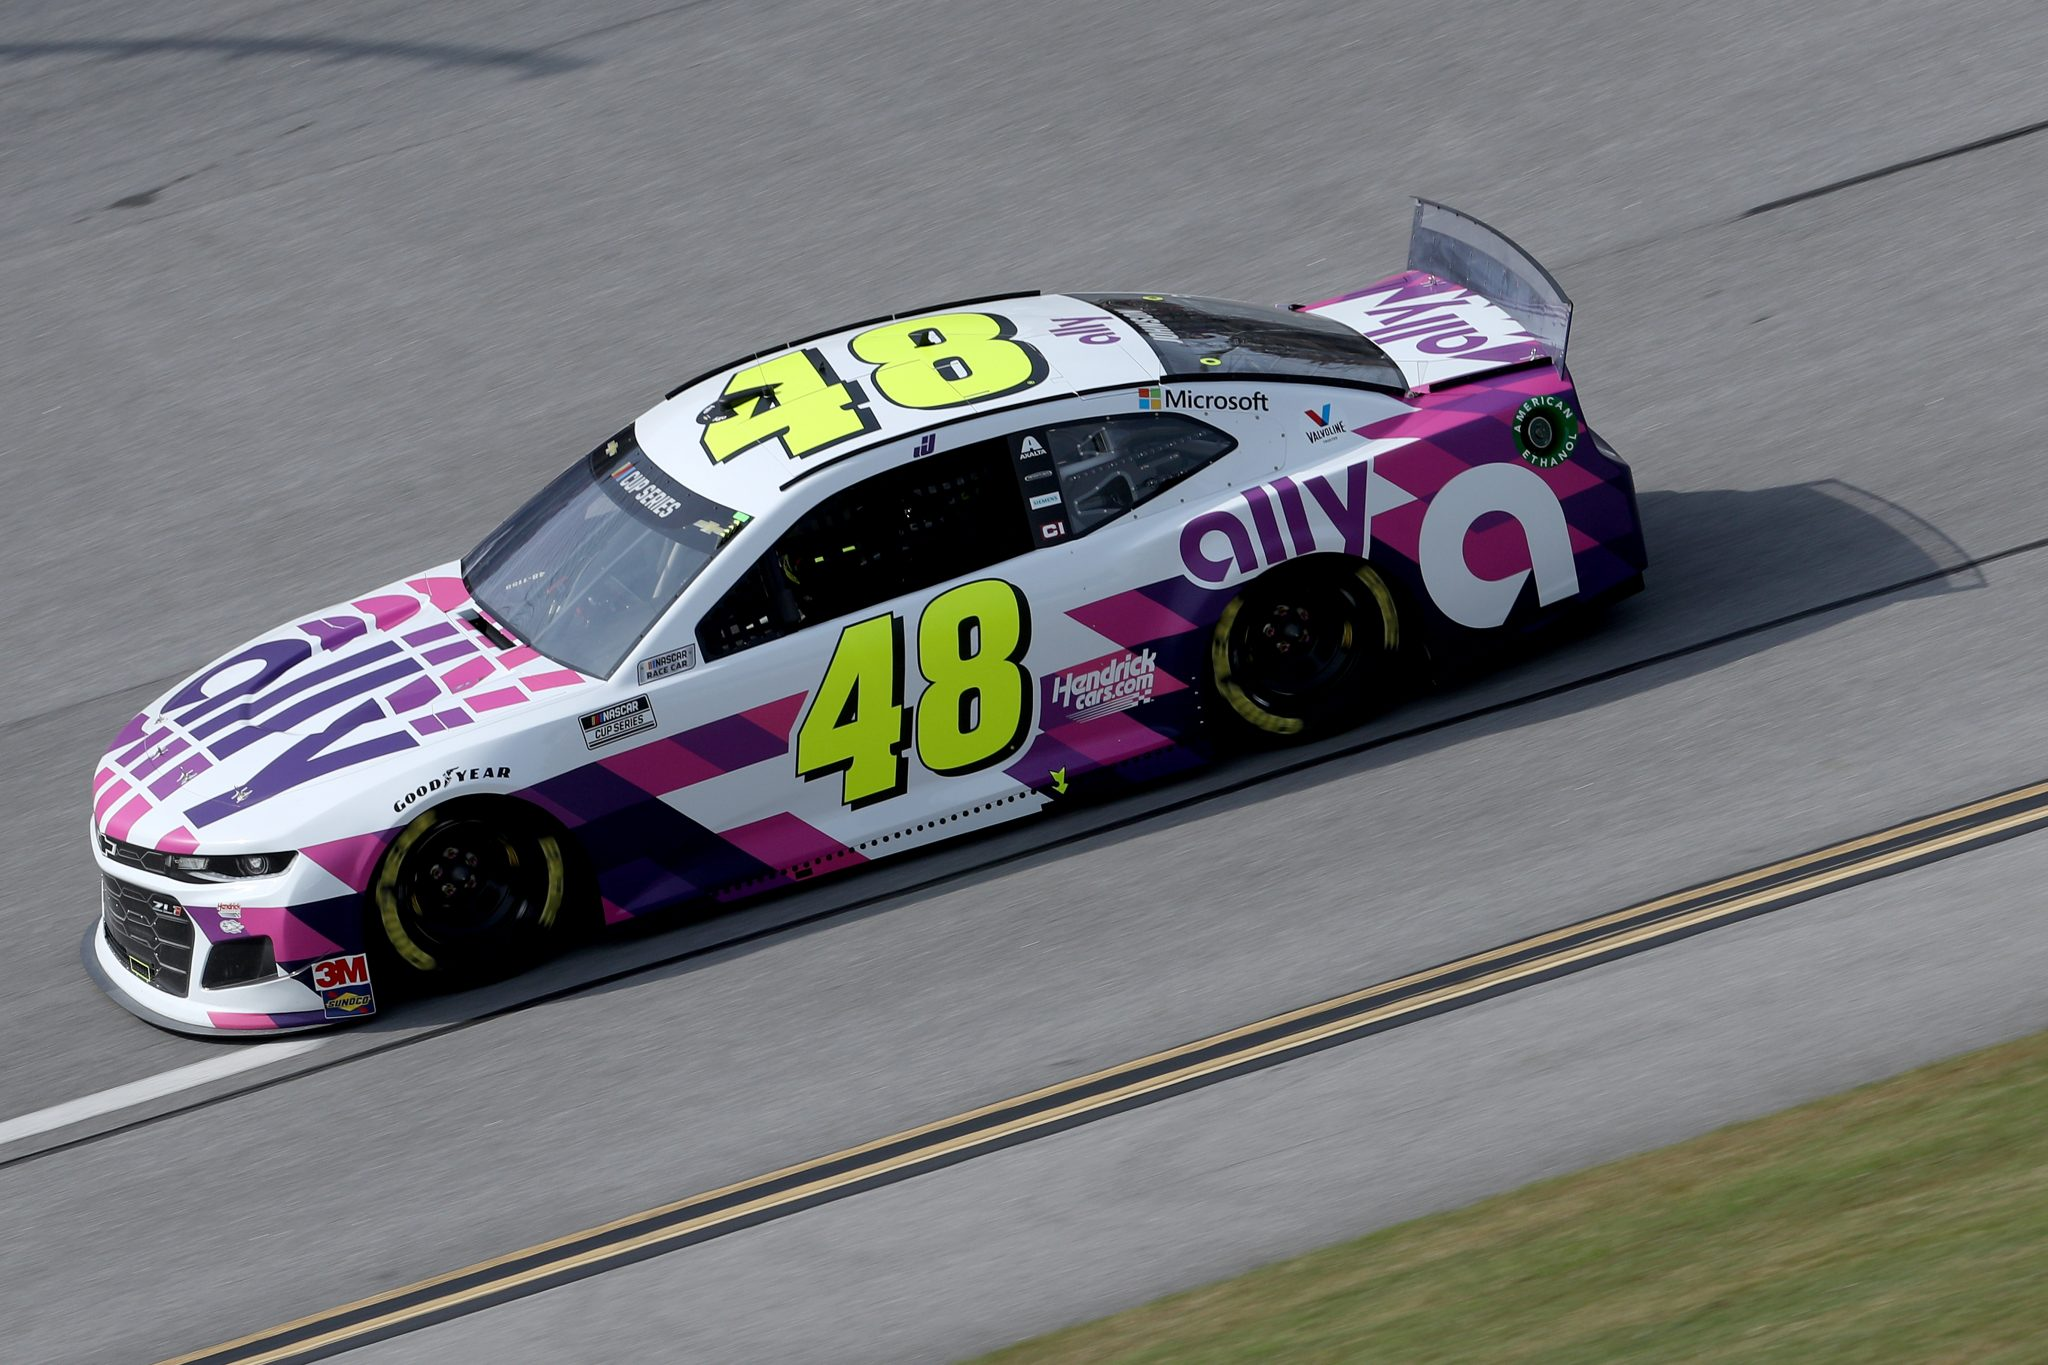 TALLADEGA, ALABAMA - OCTOBER 04: Jimmie Johnson, driver of the #48 Ally Chevrolet, drives during the NASCAR Cup Series YellaWood 500 at Talladega Superspeedway on October 04, 2020 in Talladega, Alabama. (Photo by Chris Graythen/Getty Images) | Getty Images